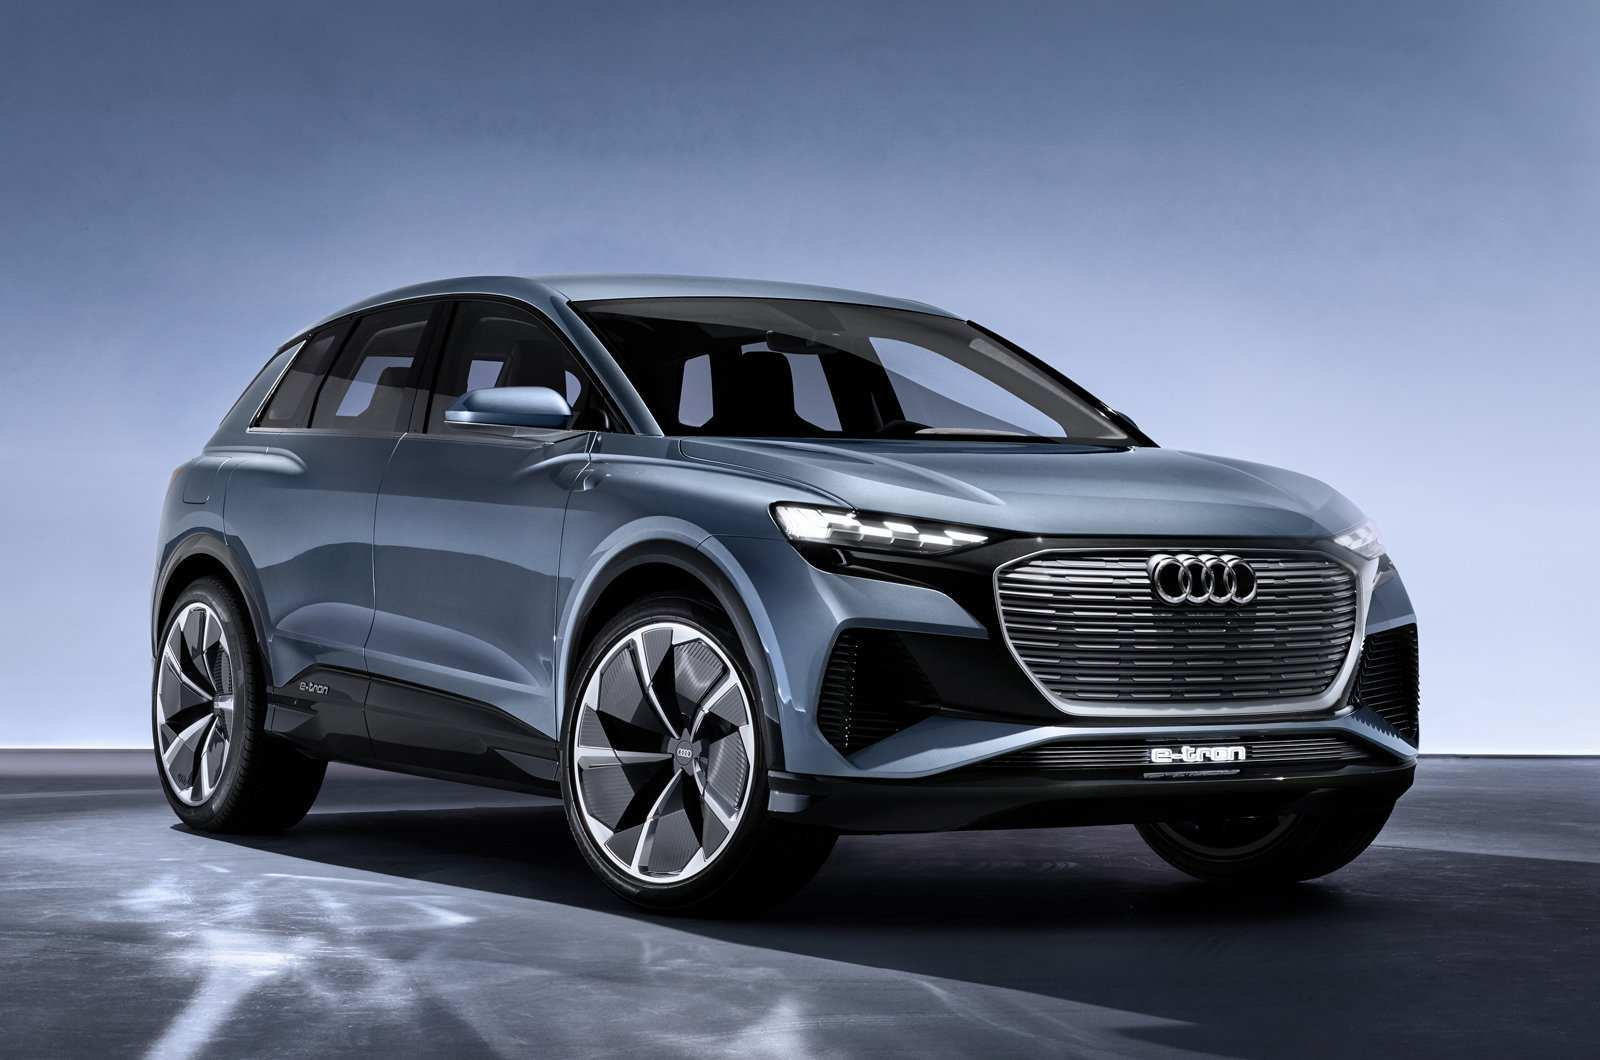 46 All New Audi New Electric Car 2020 Release Date with Audi New Electric Car 2020